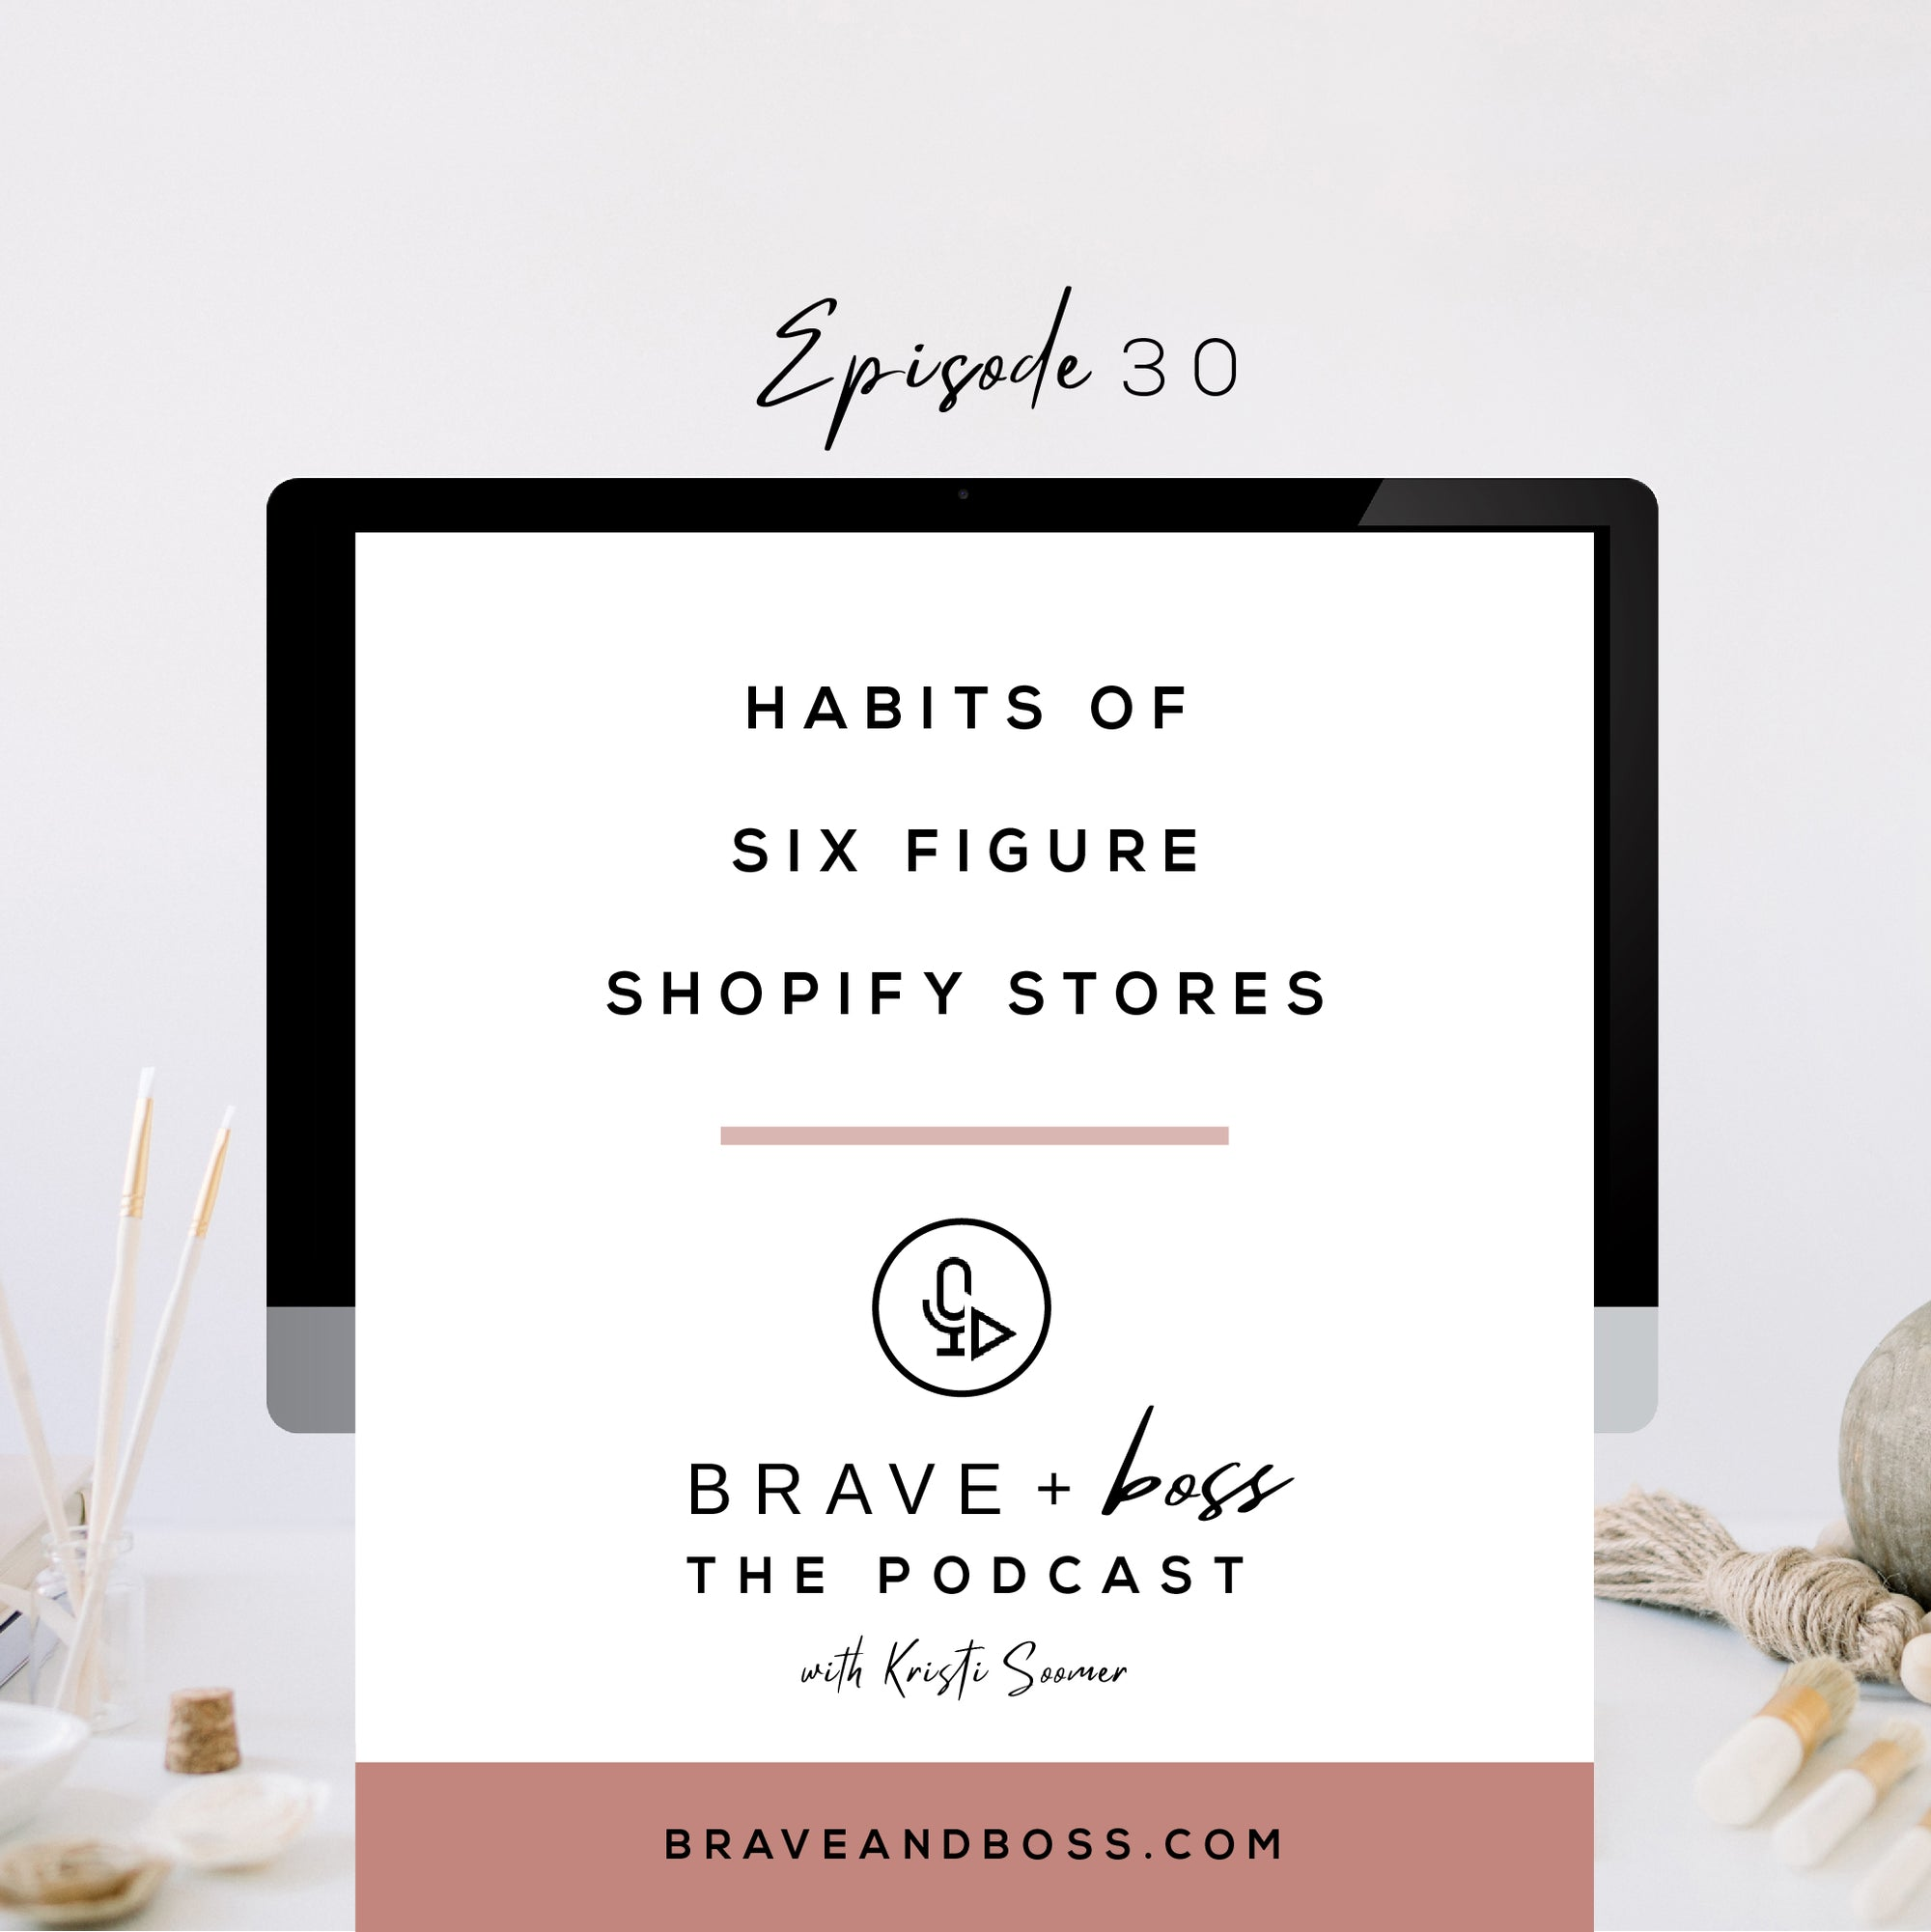 Habits of 6 Figure Shopify Stores